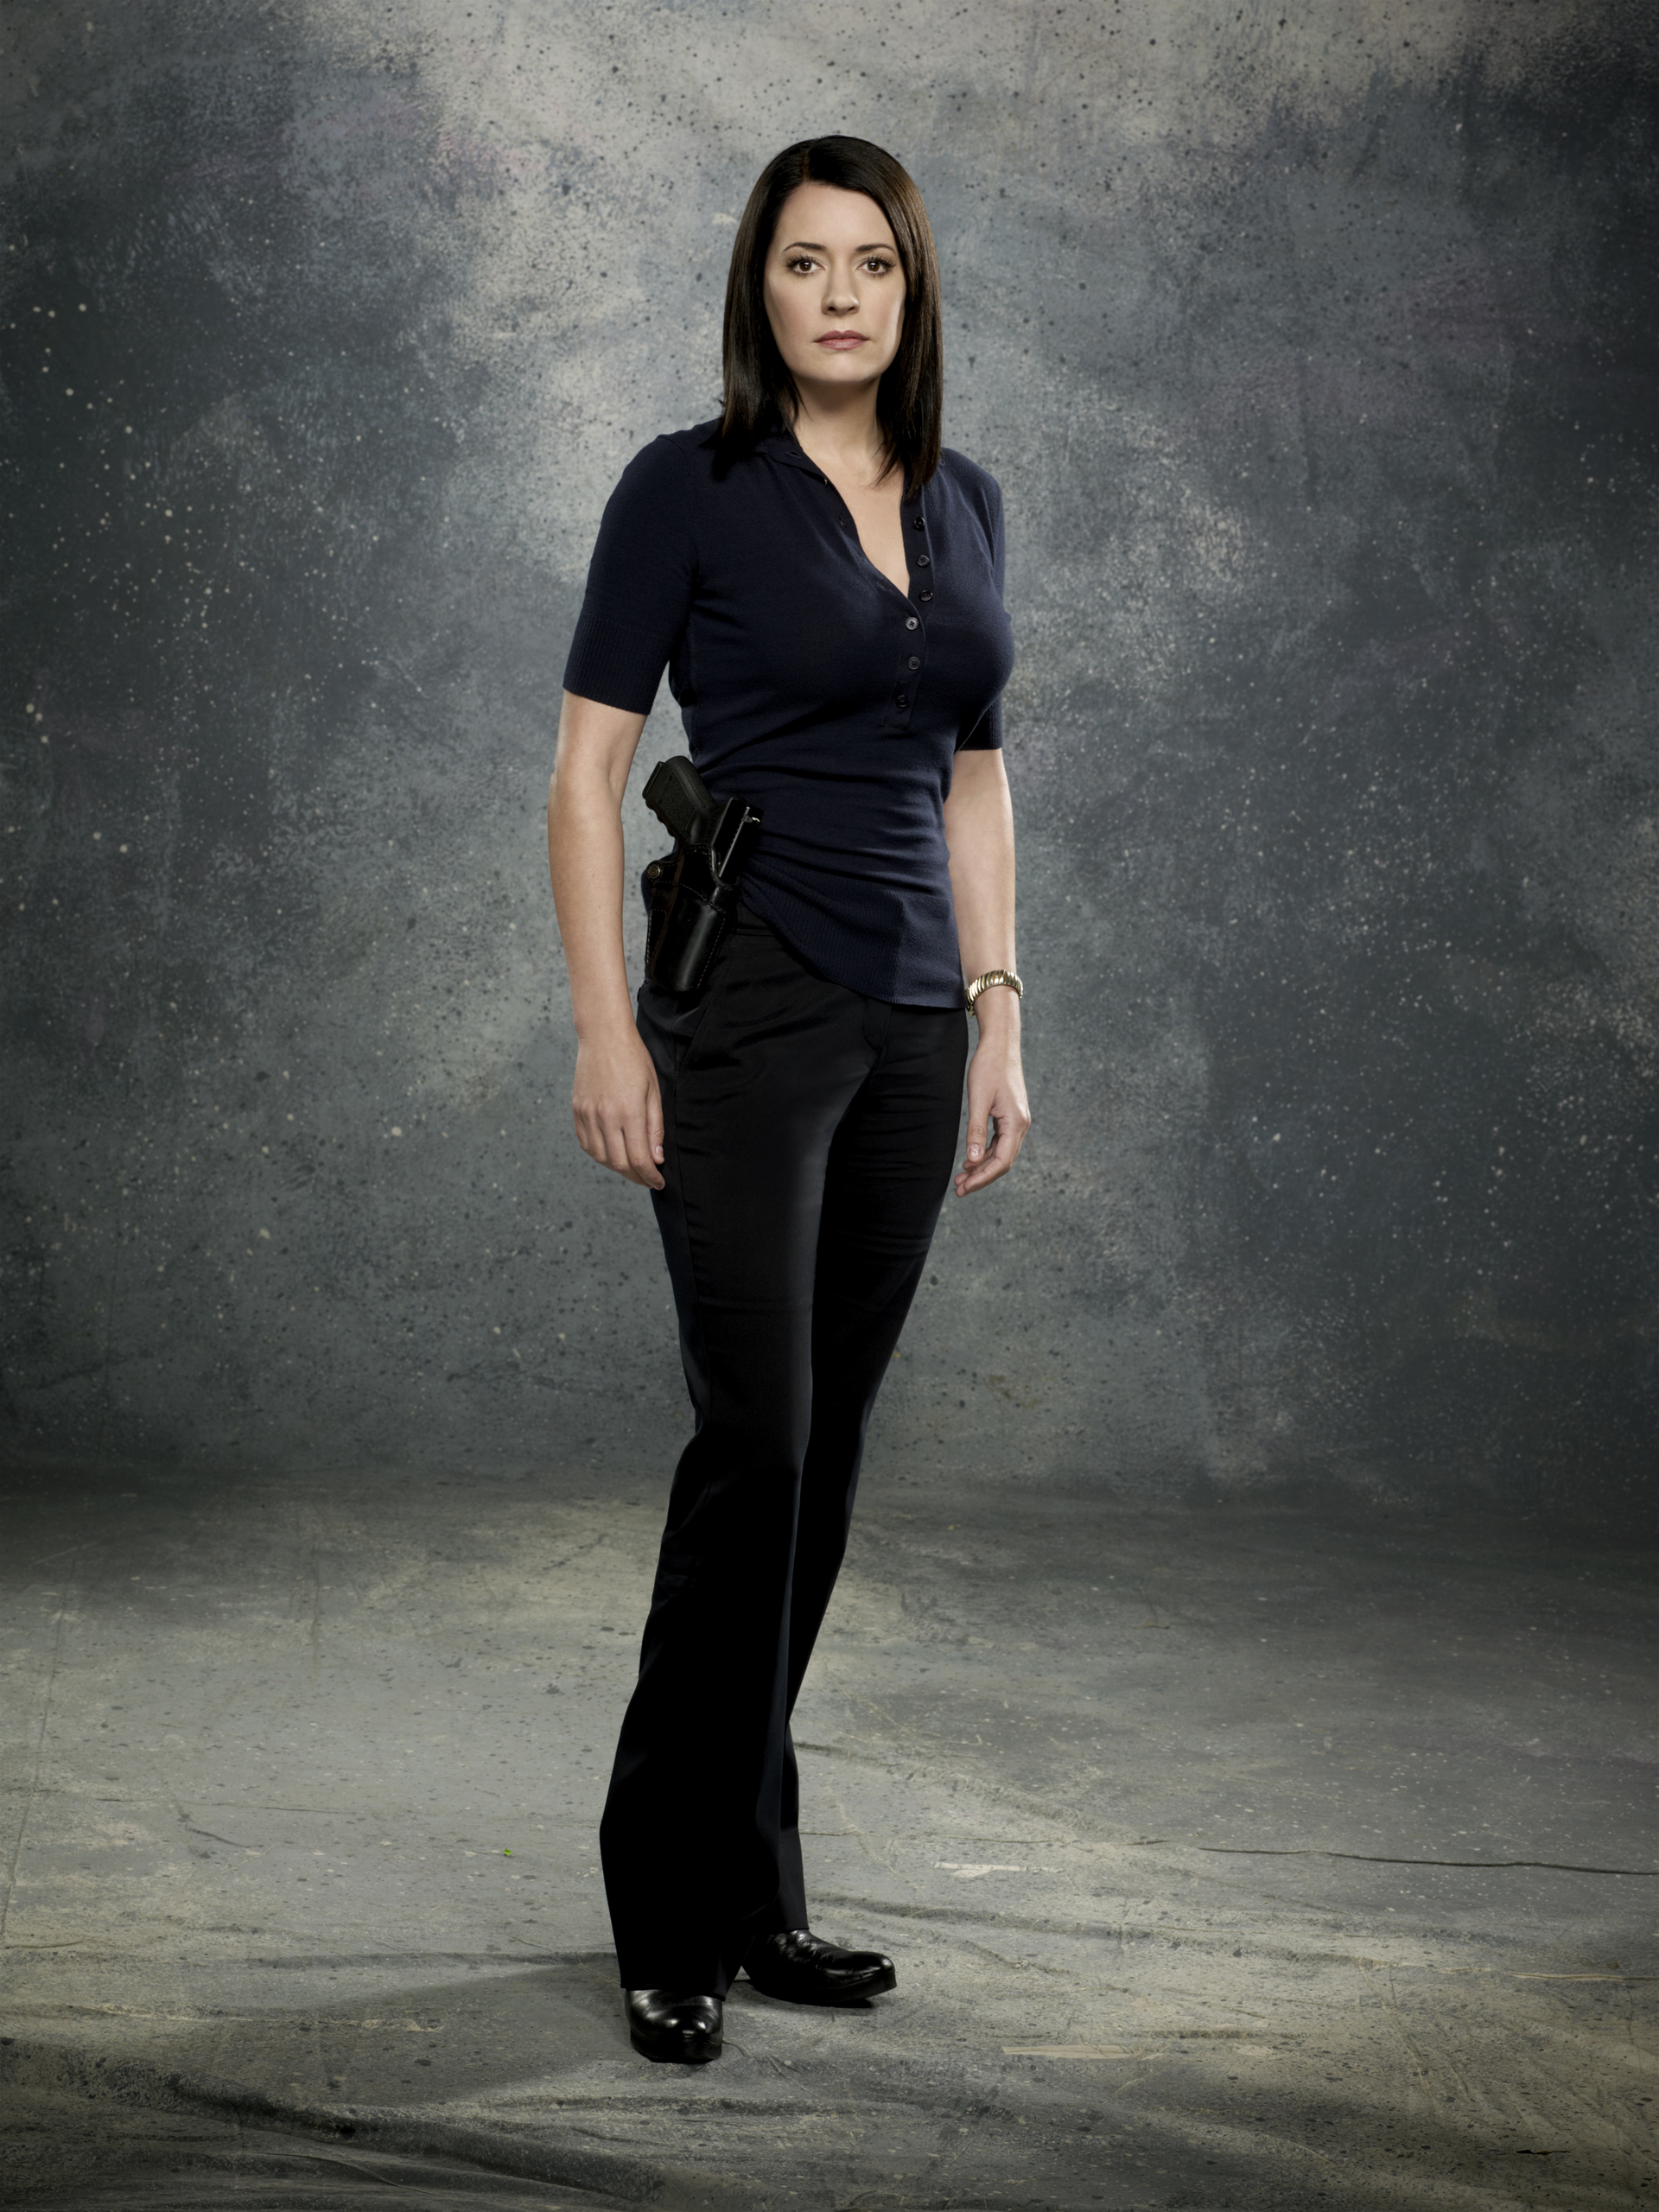 Paget Brewster Images Criminal Minds 7 Promotional Photos Hd Wallpaper And Background Photos